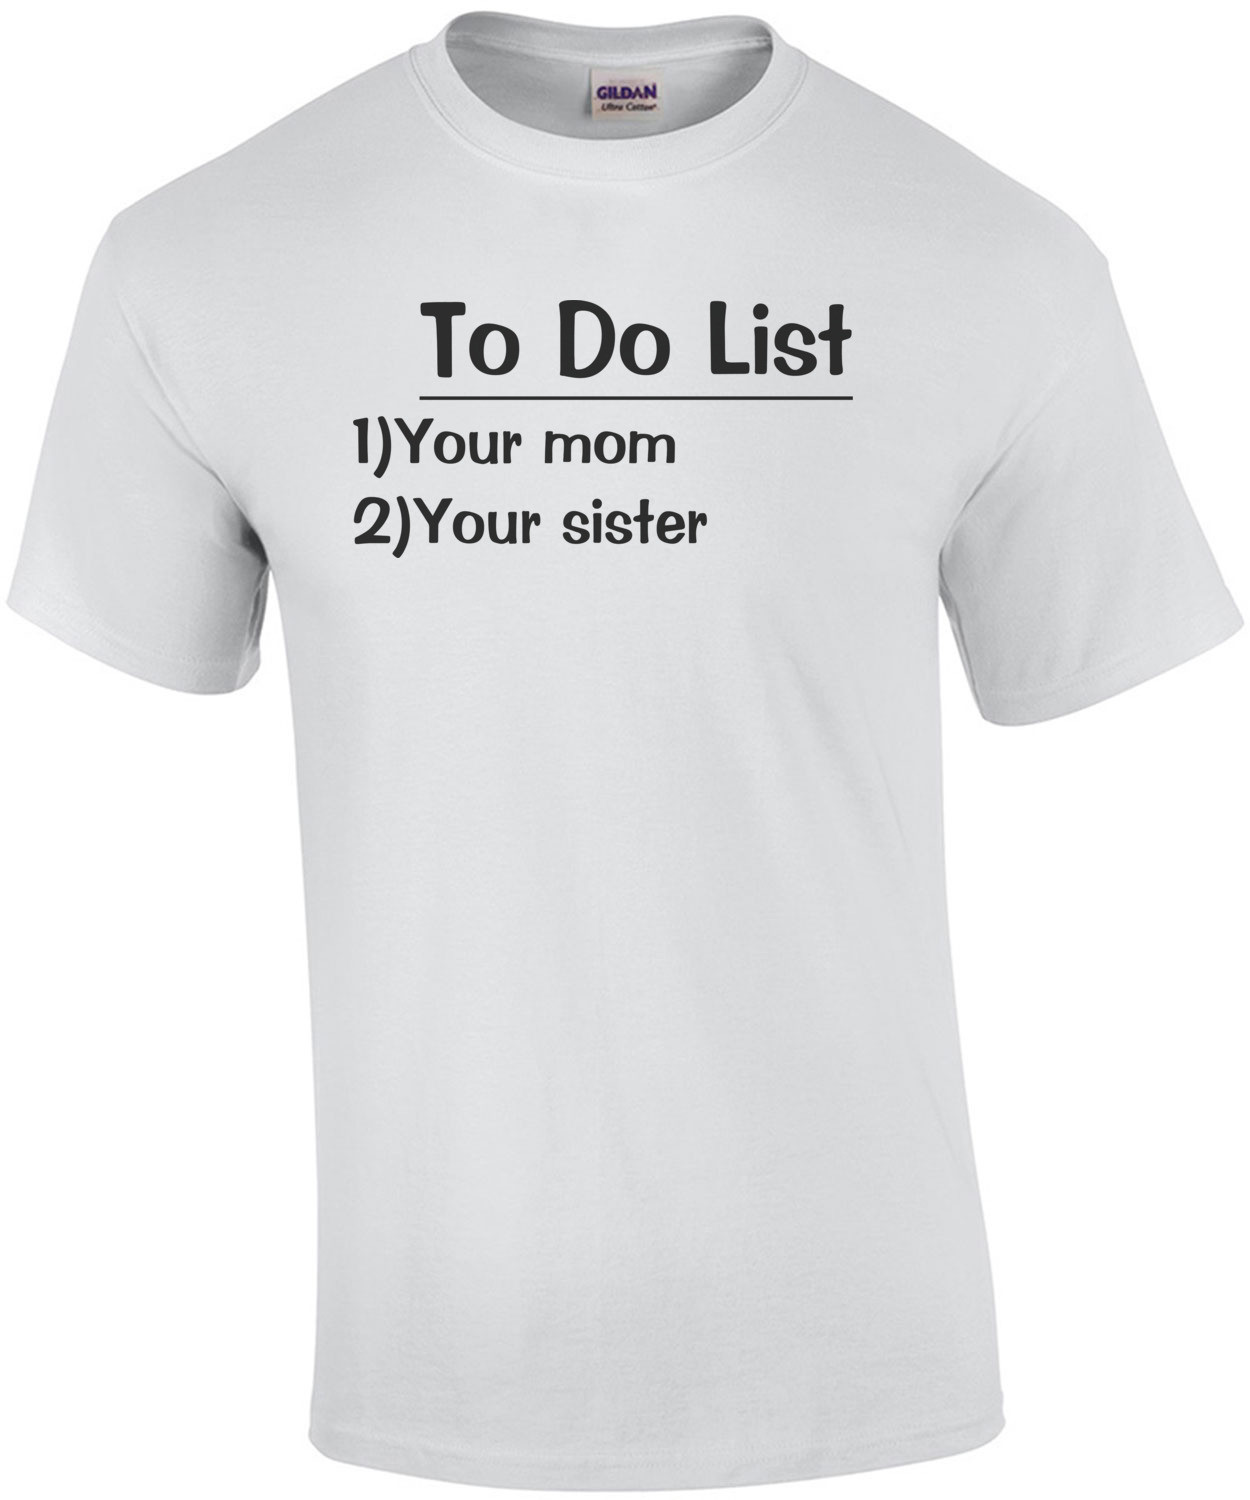 To Do List: Your Mom, Your Sister Shirt